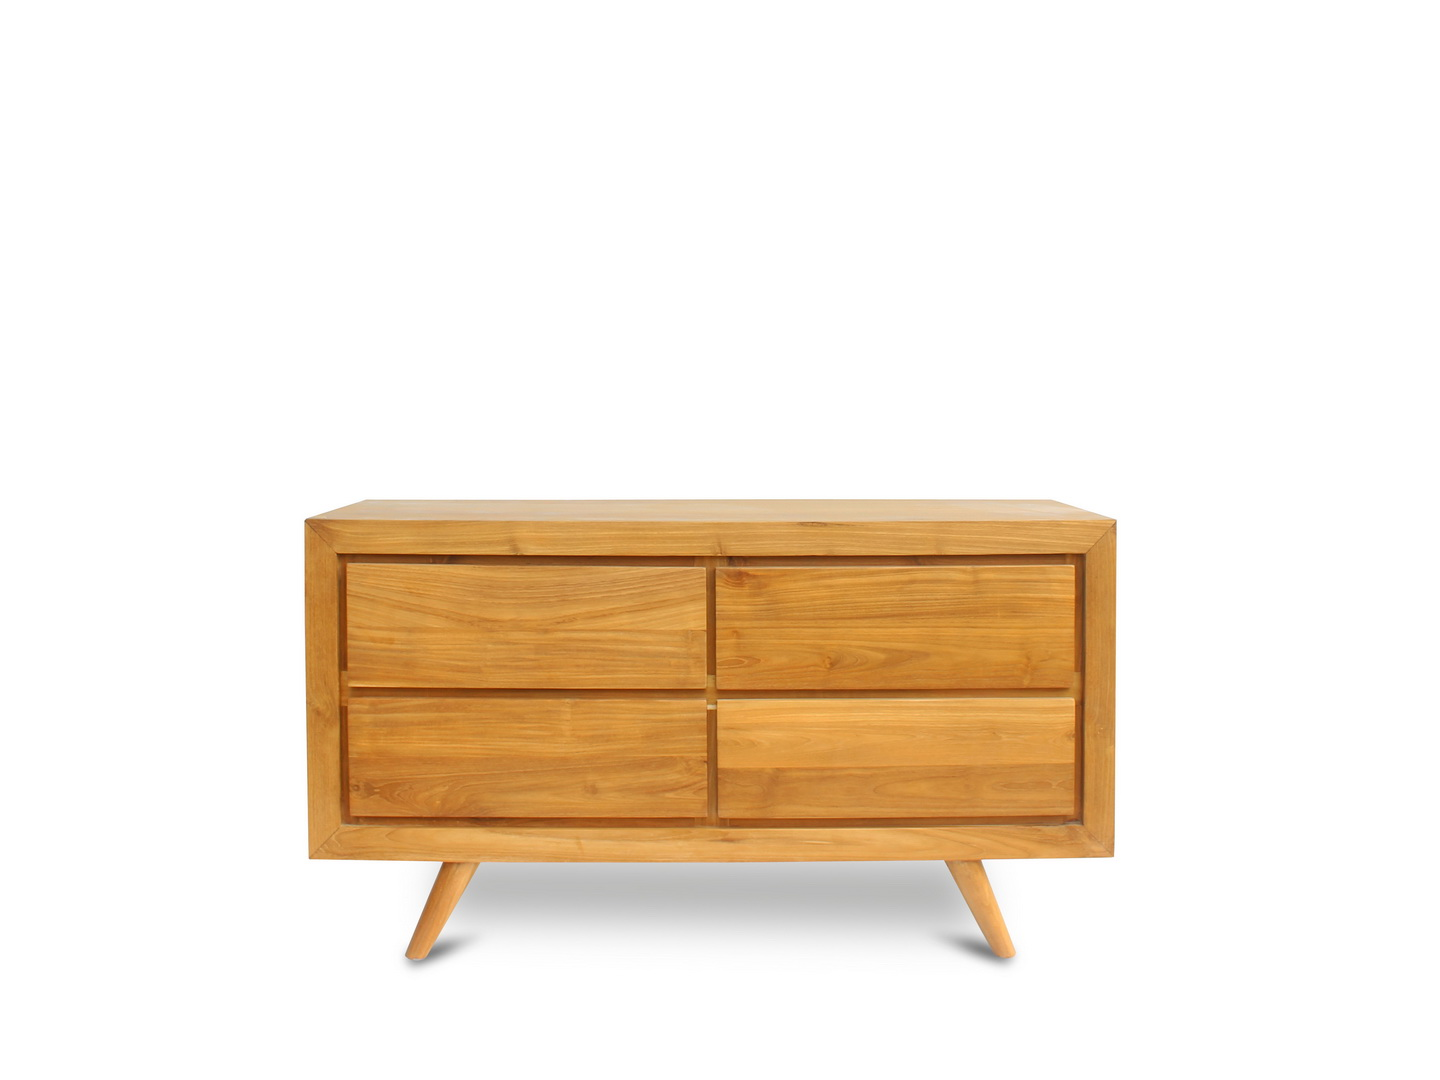 SouthHaven_cabinet_4_drawers_02_yuni_bali_furniture_manufactuerer_exporter_jepara_teakwood_indonesia_shopping_showroom